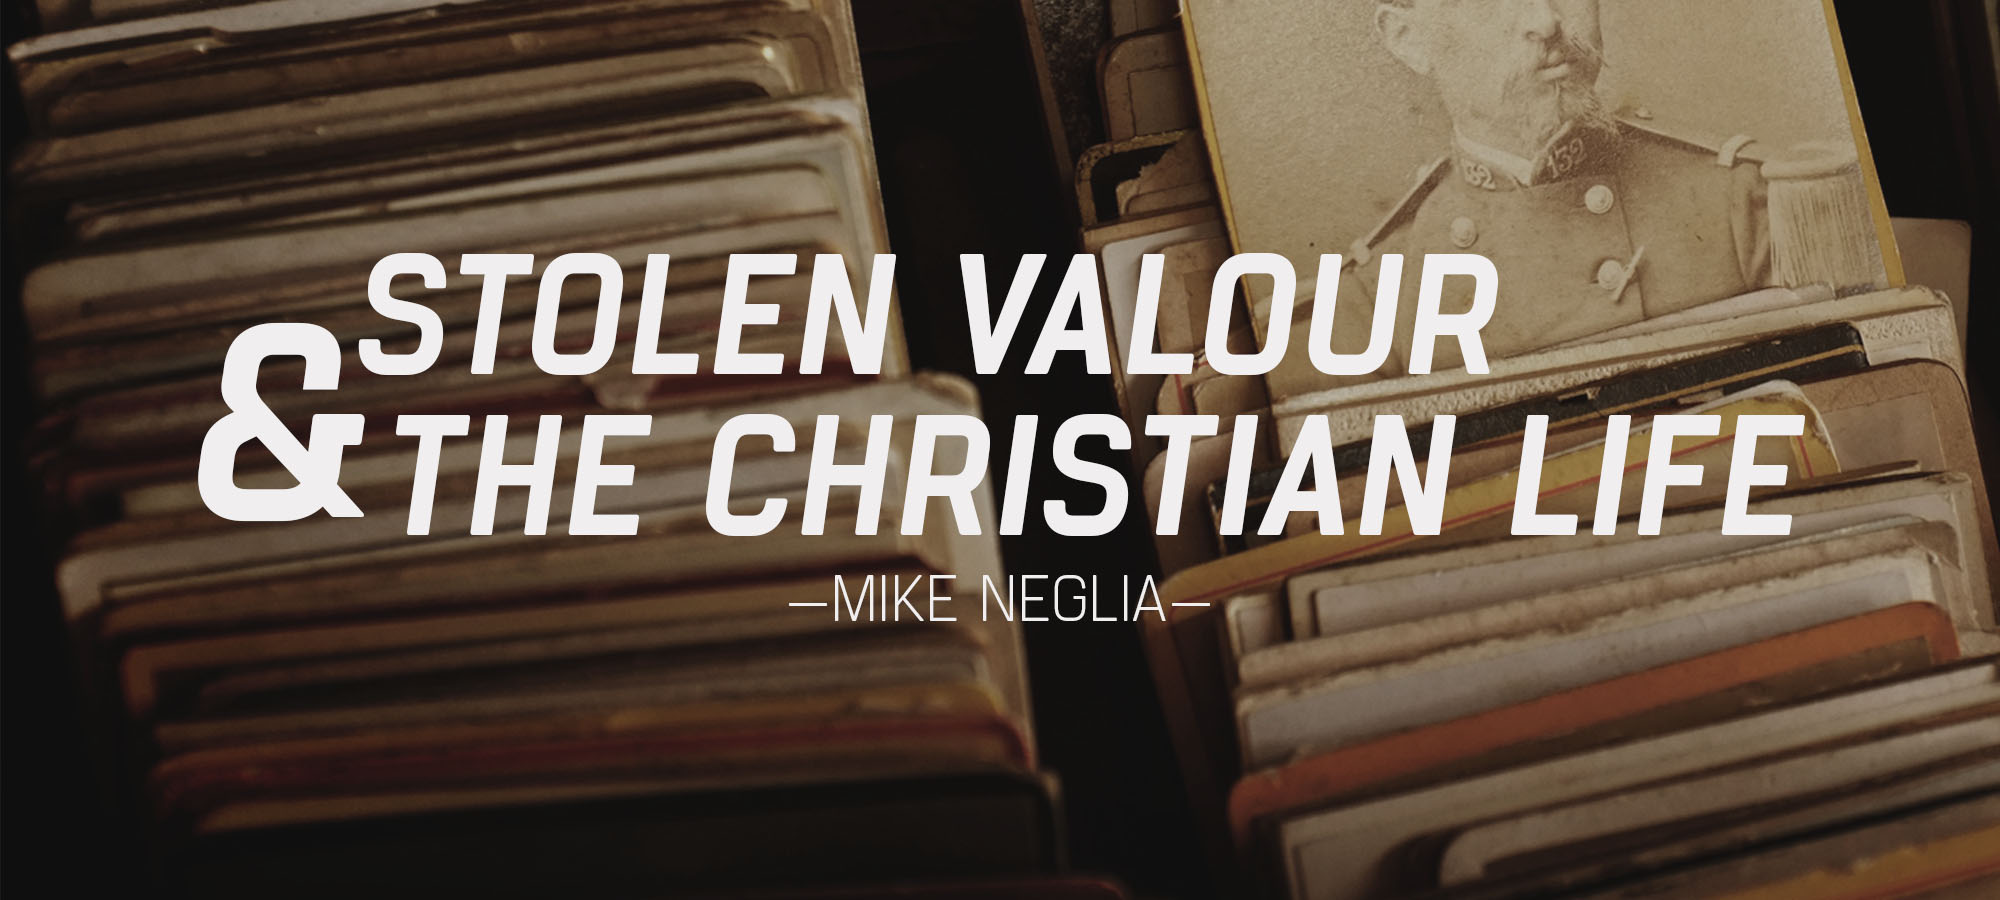 Stolen Valour & The Christian Life